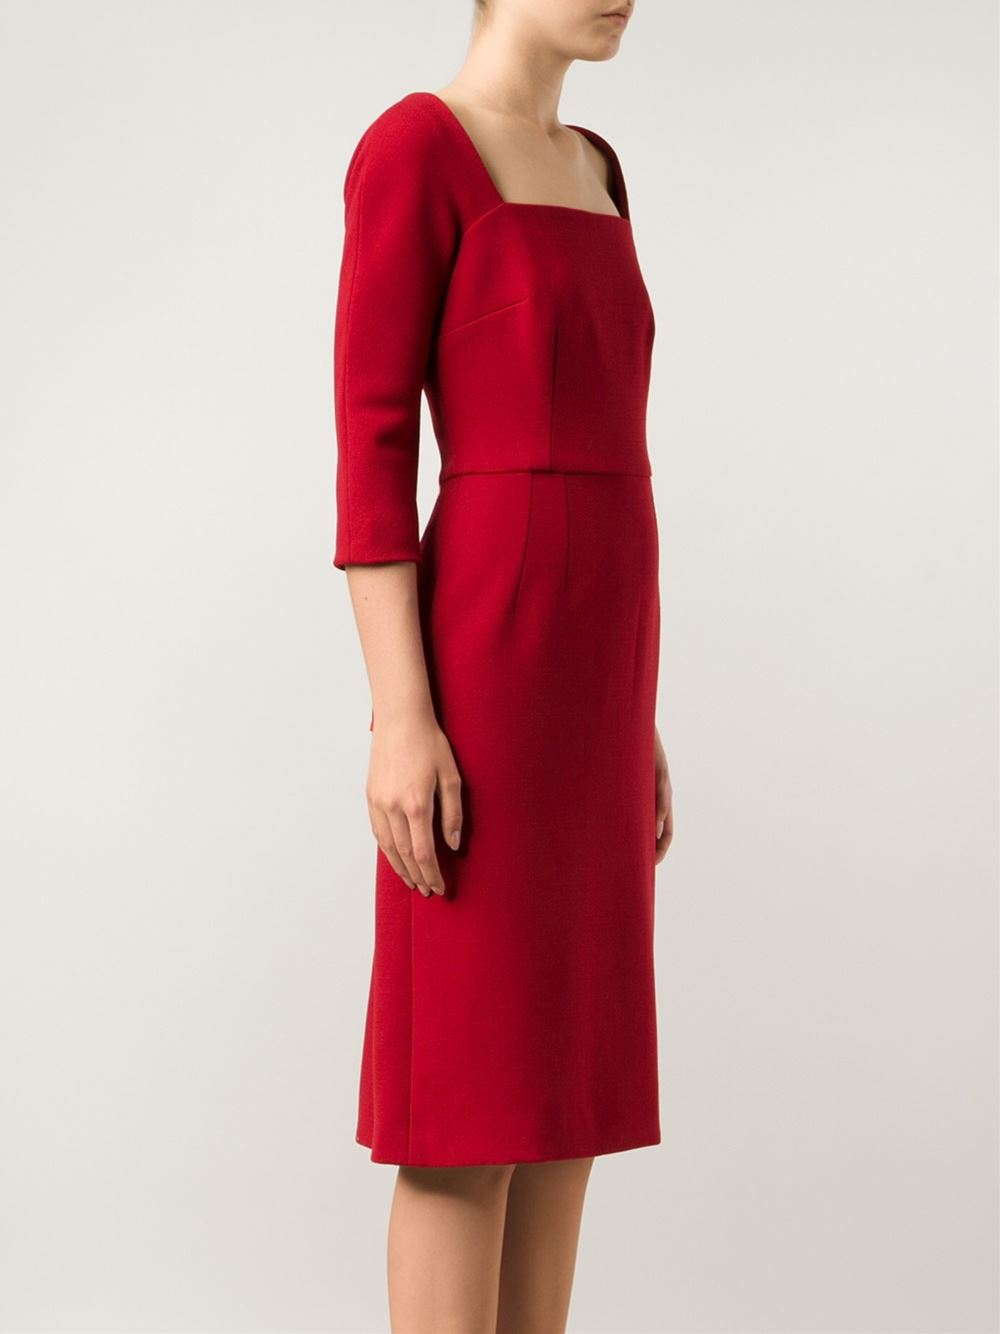 Dolce Amp Gabbana Crepe Square Neck Dress In Red Lyst